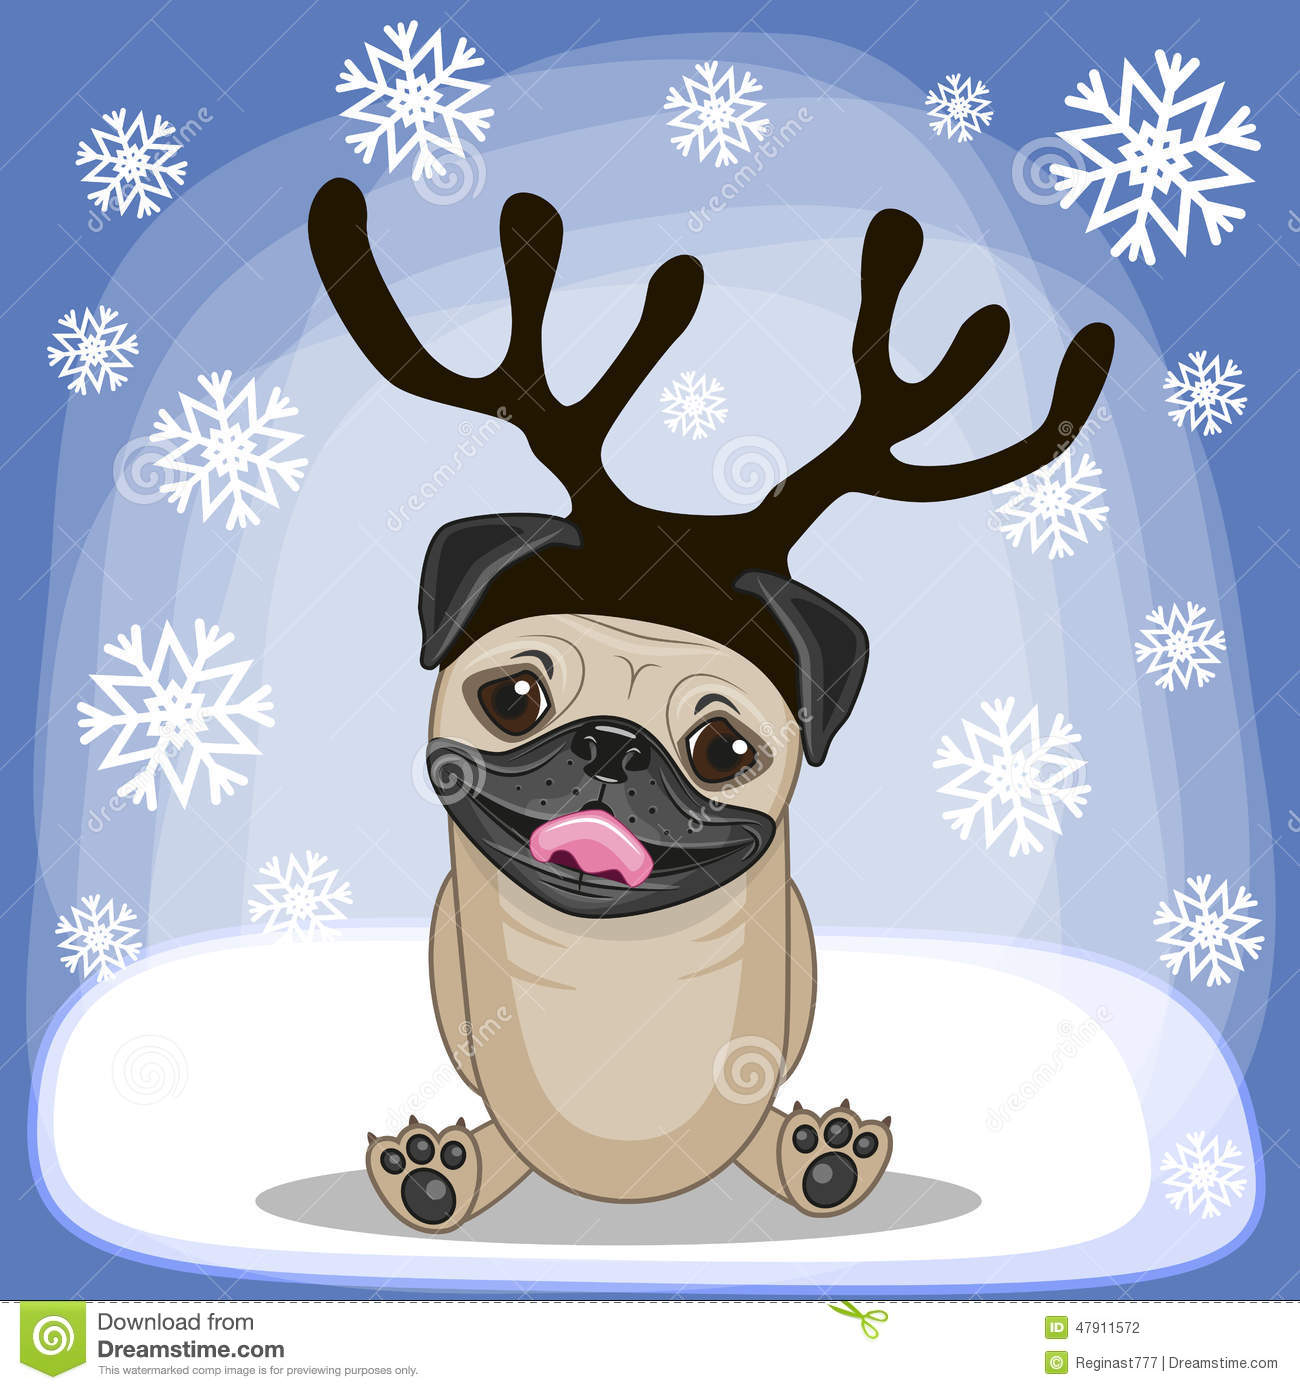 Pug Dog With Antlers Stock Vector. Illustration Of Graphic